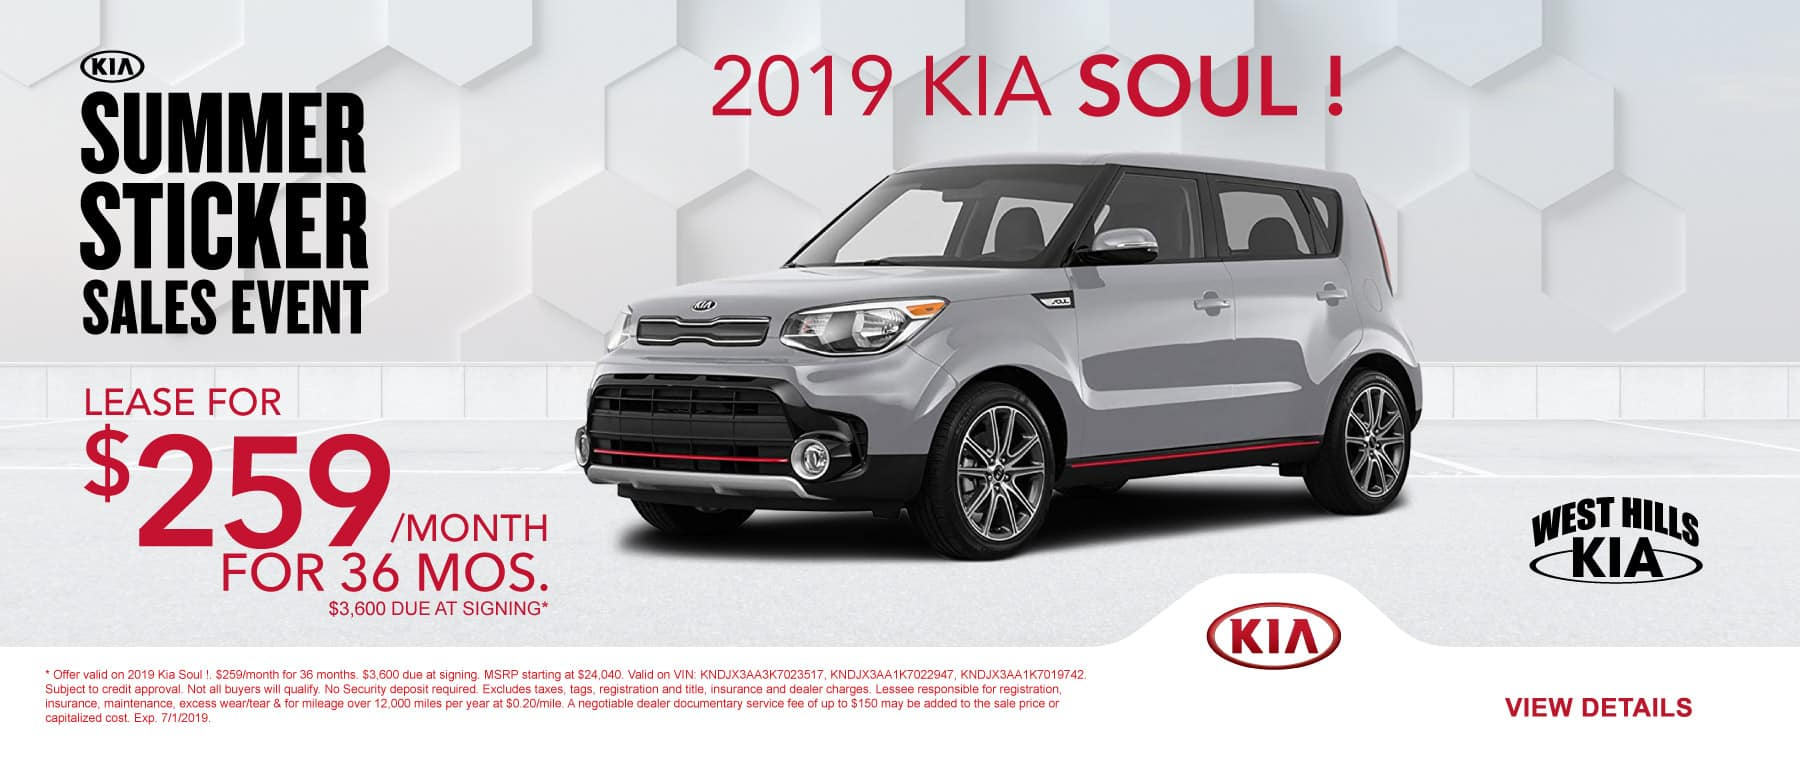 2019 Kia Soul ! (featured vehicle)  $259/month for 36 months  $3,600 Due at Signing   Offer valid on 2019 Kia Soul !. $259/month for 36 months. $3,600 due at signing. MSRP starting at $24,040. Valid on VIN: KNDJX3AA3K7023517, KNDJX3AA1K7022947, KNDJX3AA1K7019742. Subject to credit approval. Not all buyers will qualify. No Security deposit required. Excludes taxes, tags, registration and title, insurance and dealer charges. Lessee responsible for registration, insurance, maintenance, excess wear/tear & for mileage over 12,000 miles per year at $0.20/mile. A negotiable dealer documentary service fee of up to $150 may be added to the sale price or capitalized cost. Exp. 7/1/2019.